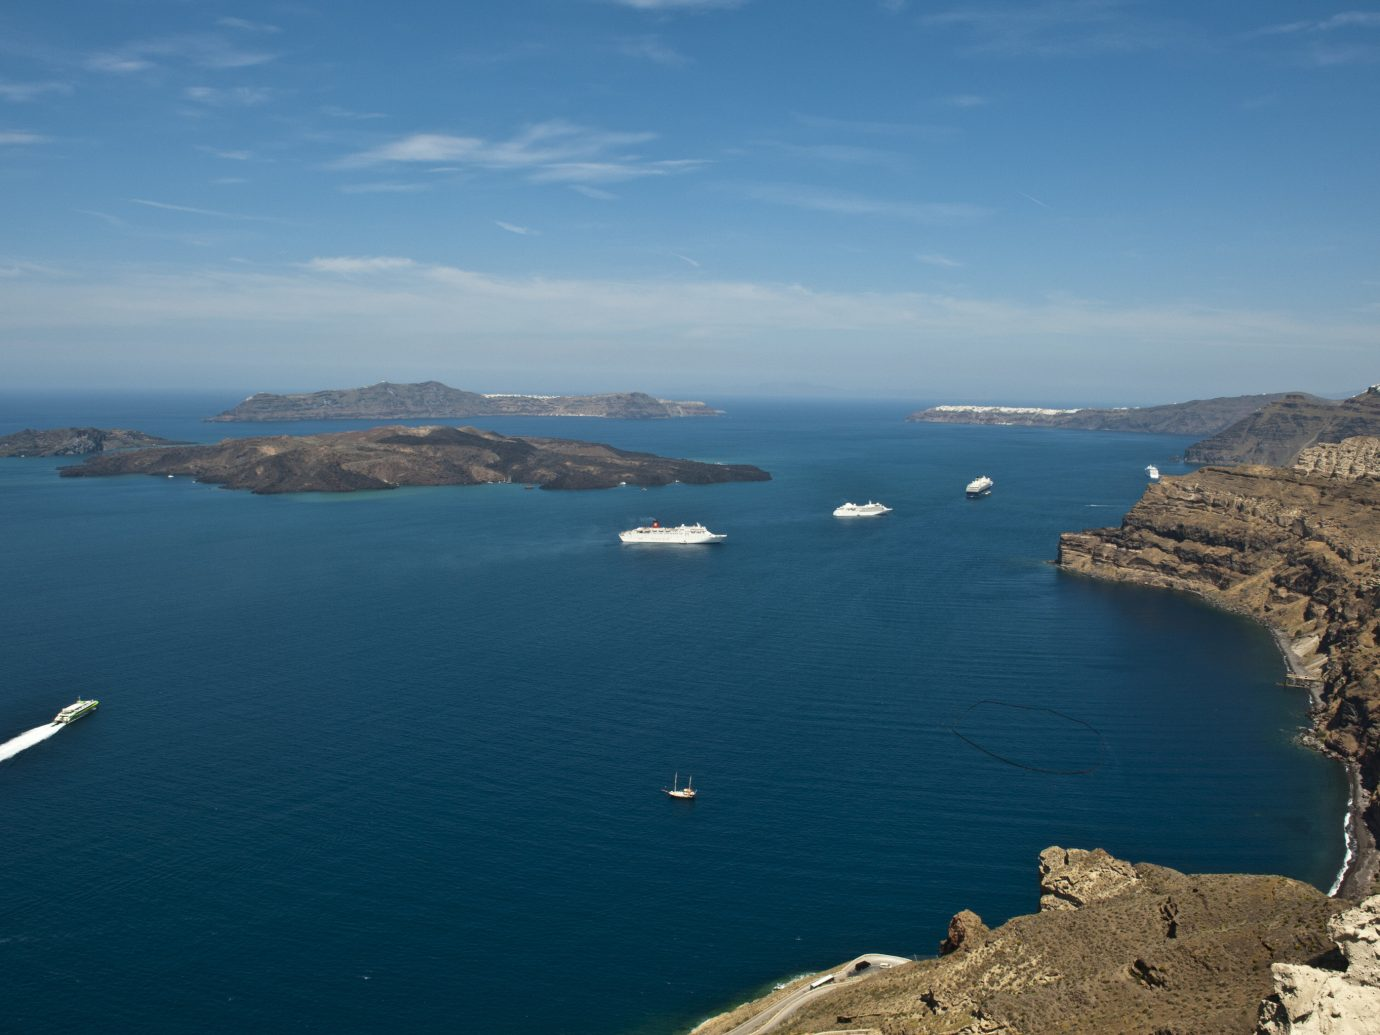 Trip Ideas water sky outdoor Nature Sea mountain coastal and oceanic landforms Coast Boat headland promontory rock cape horizon bay aerial photography peninsula inlet Lake Ocean archipelago Island islet water resources calm reservoir overlooking shore distance hillside day land